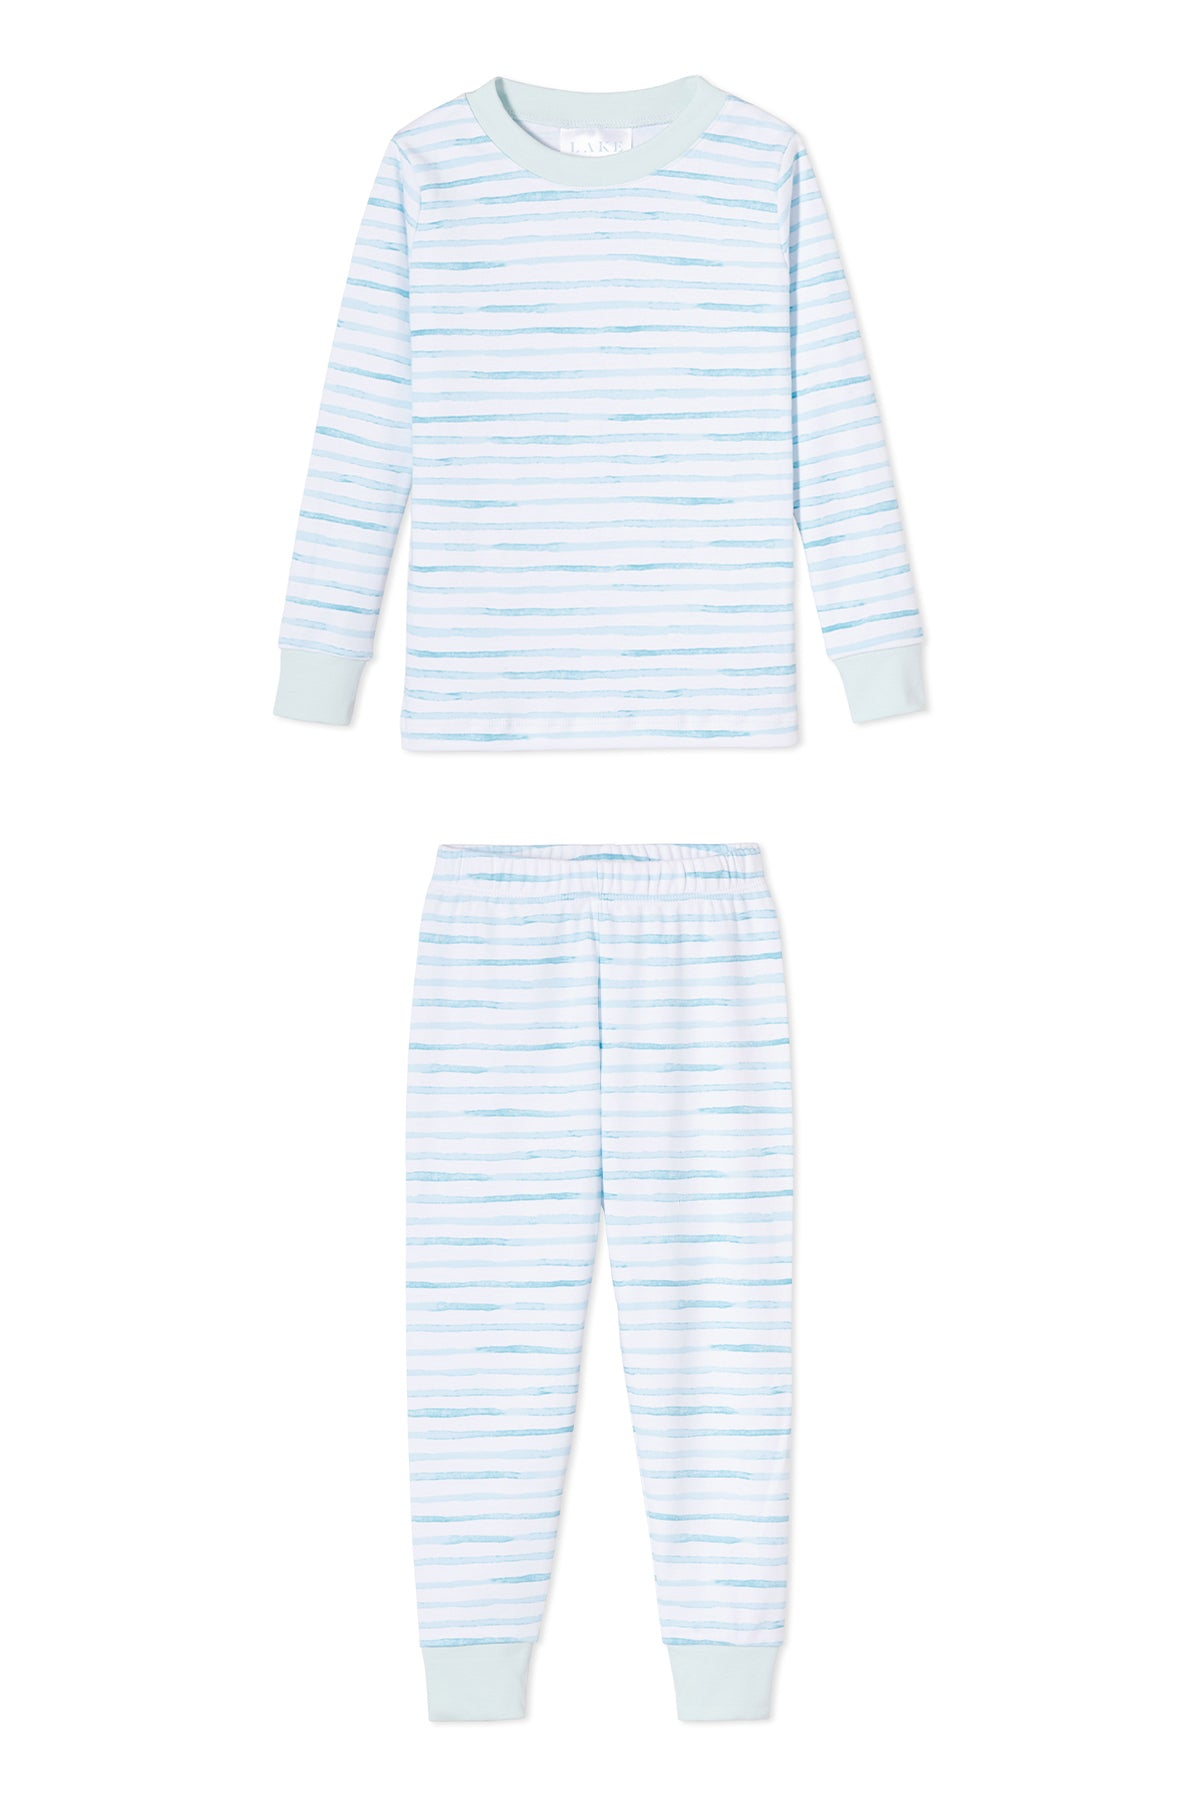 Kids Long-Long Set in Sea Breeze